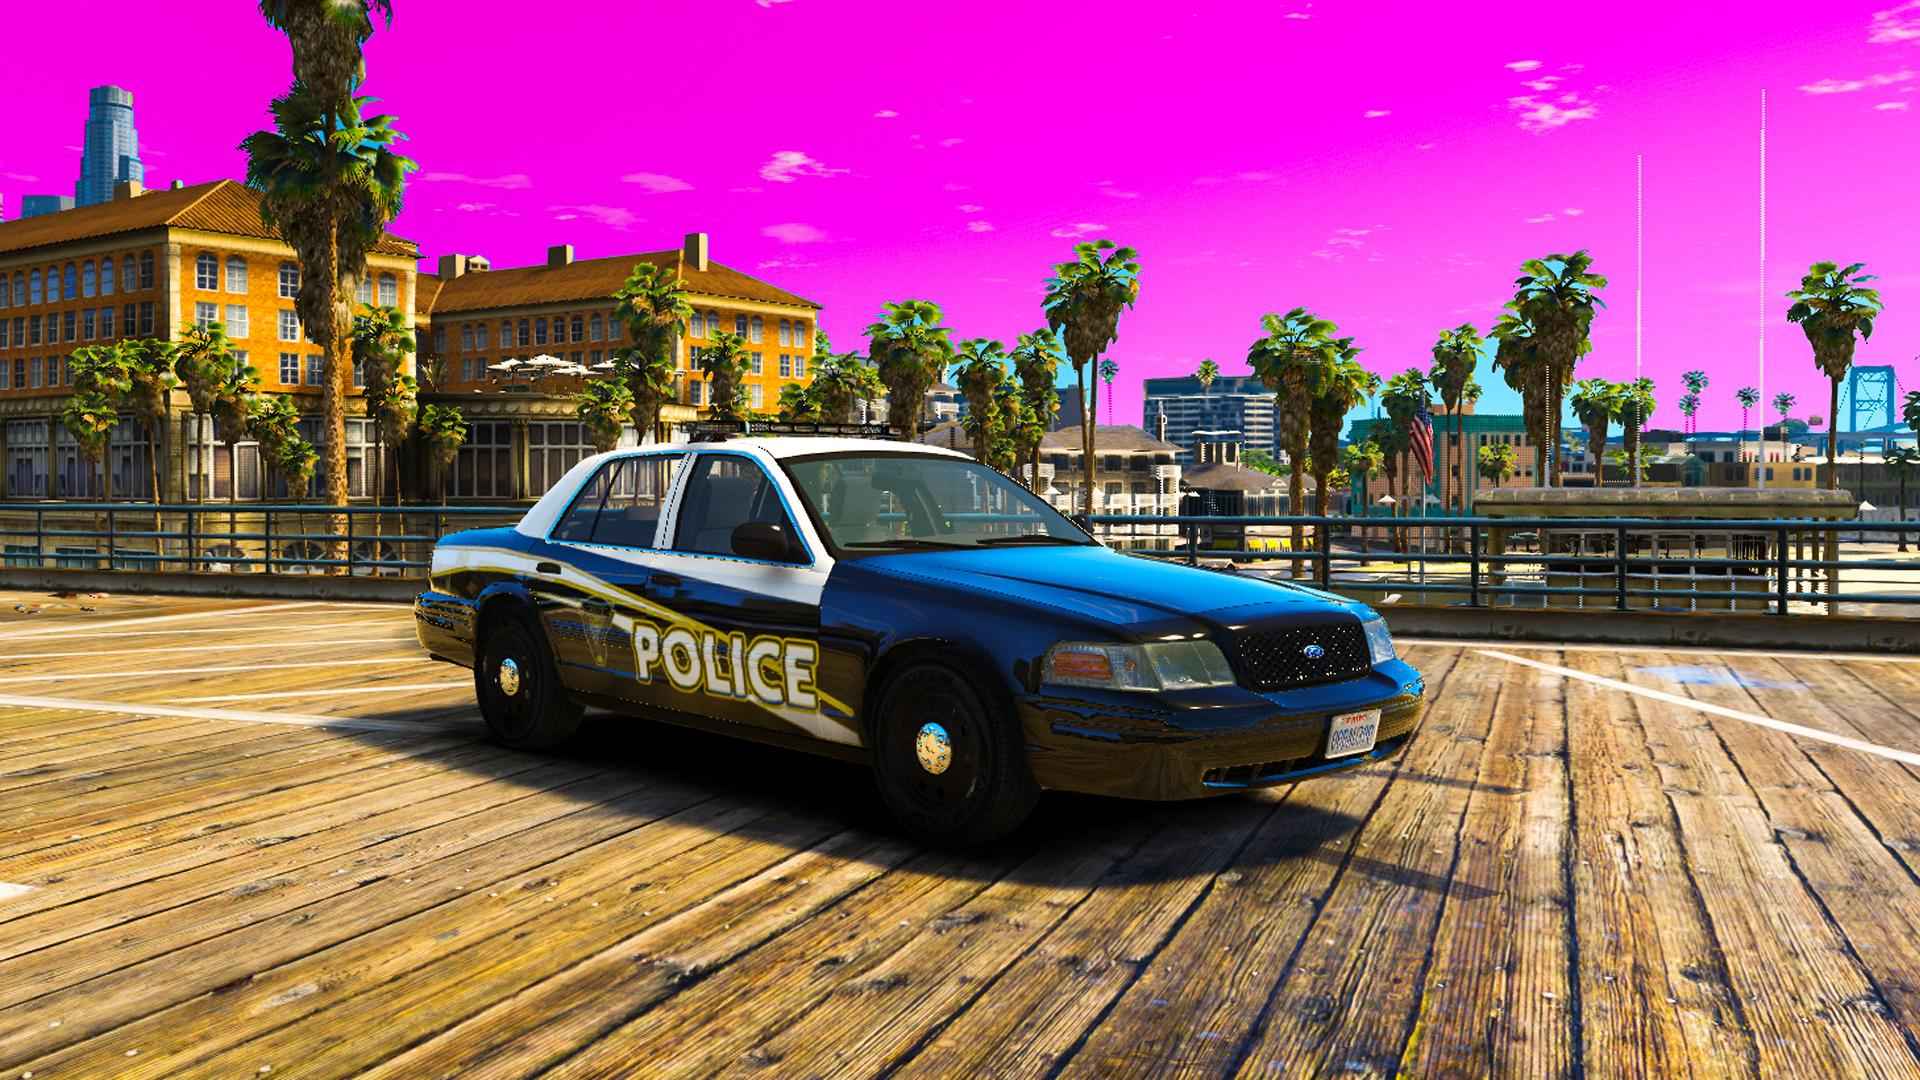 Els Quot The Flash Quot Ccpd Crown Victoria Police Car From